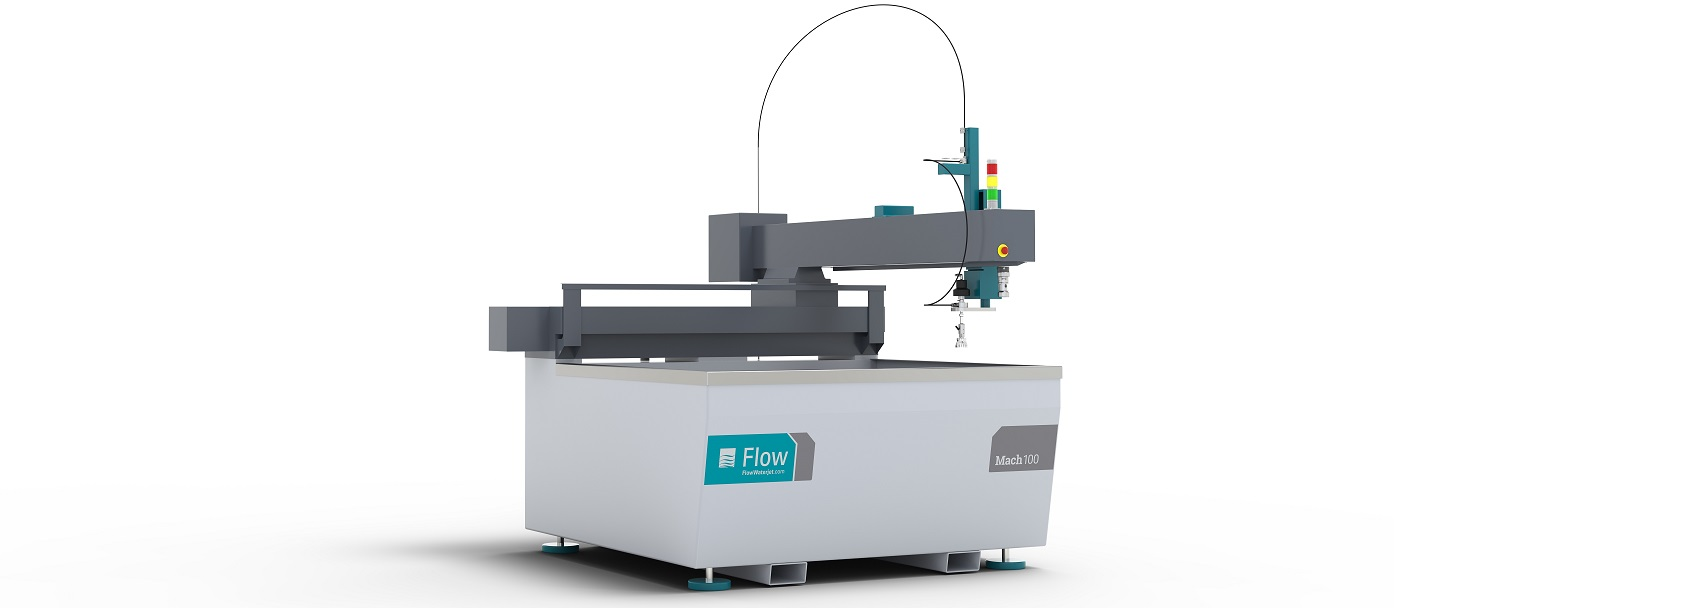 Flow Mach 100 1330 Waterjet